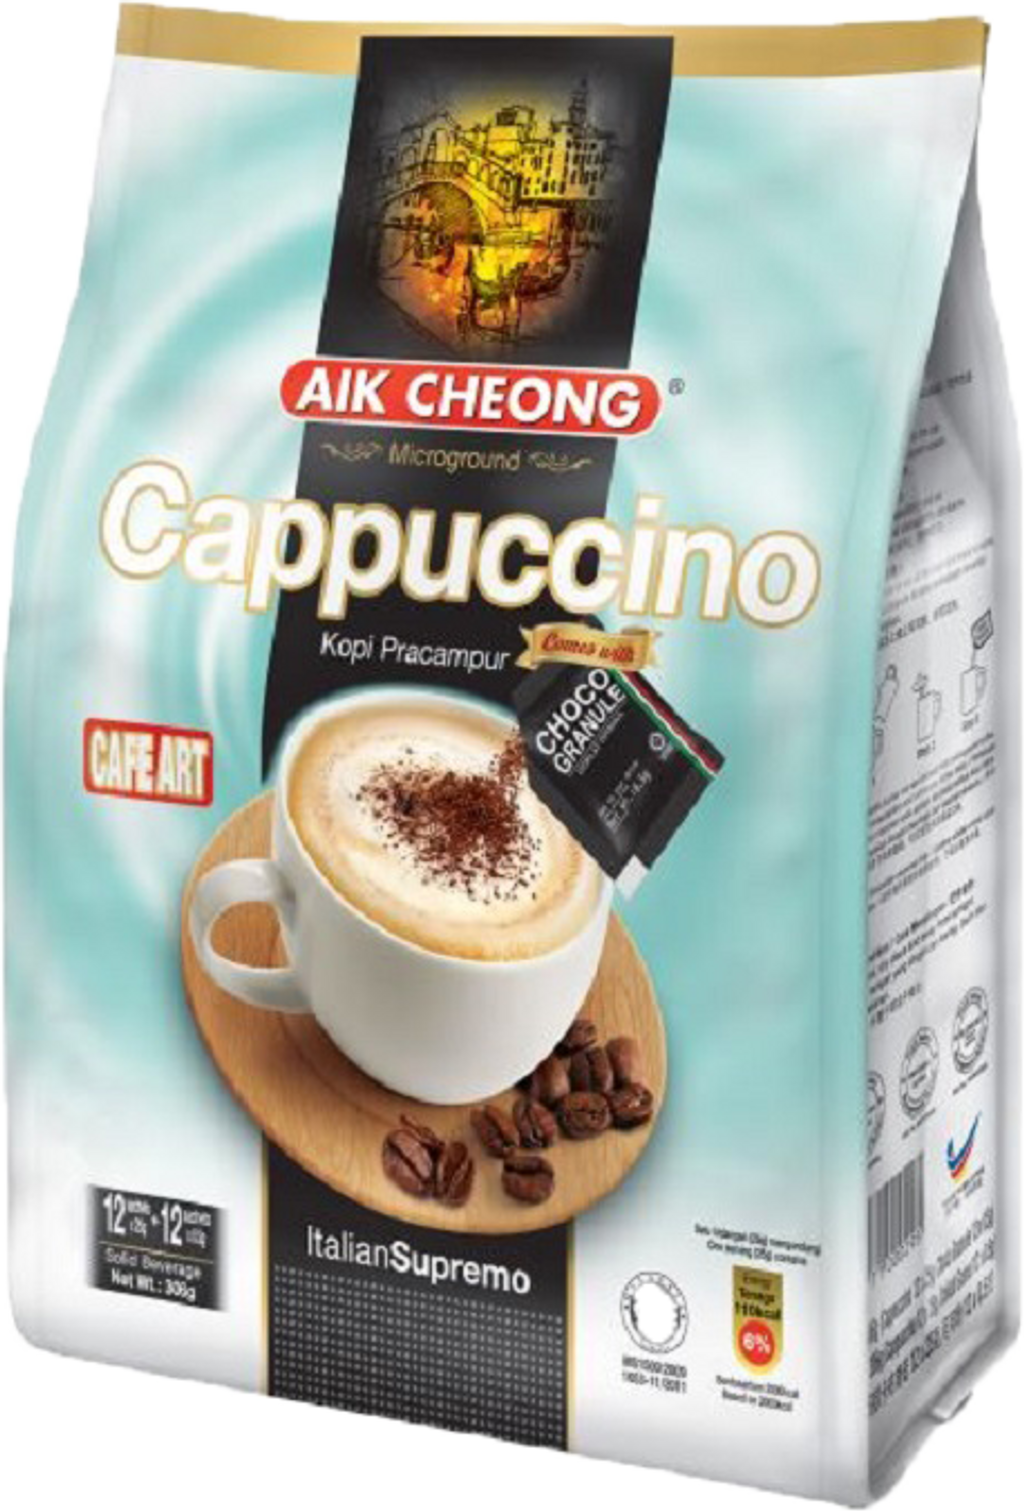 Cappuccino new.png